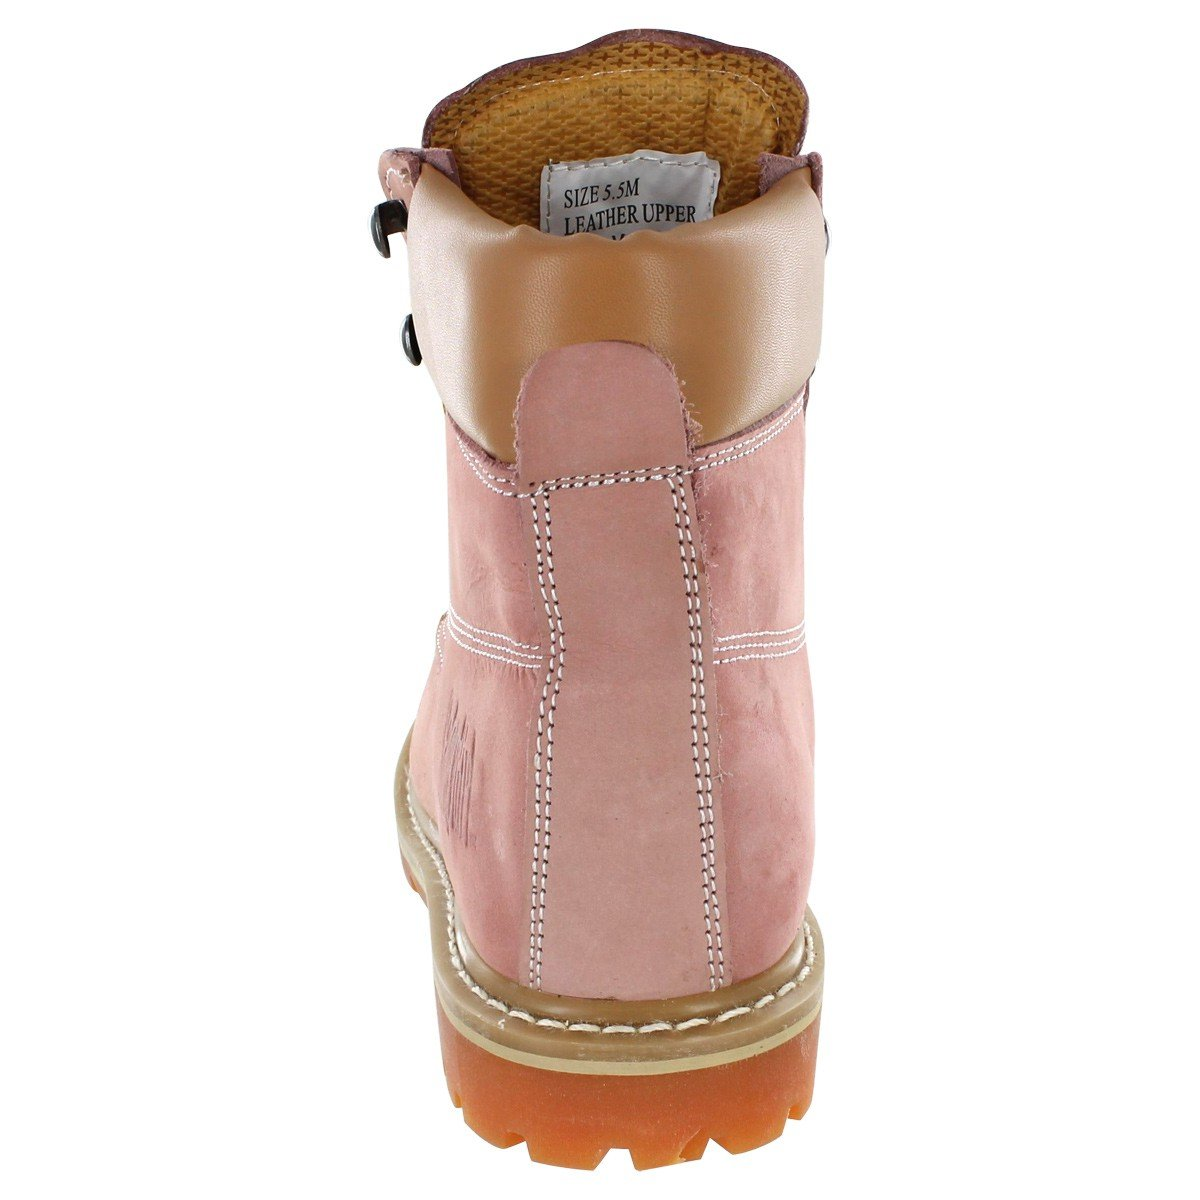 Safety Girl GS004-LTPNK-8M Safety Girl II Soft Toe Work Boots - Pink - 8M, English, Capacity, Volume, Leather, 8M, Pink () by Safety Girl (Image #6)